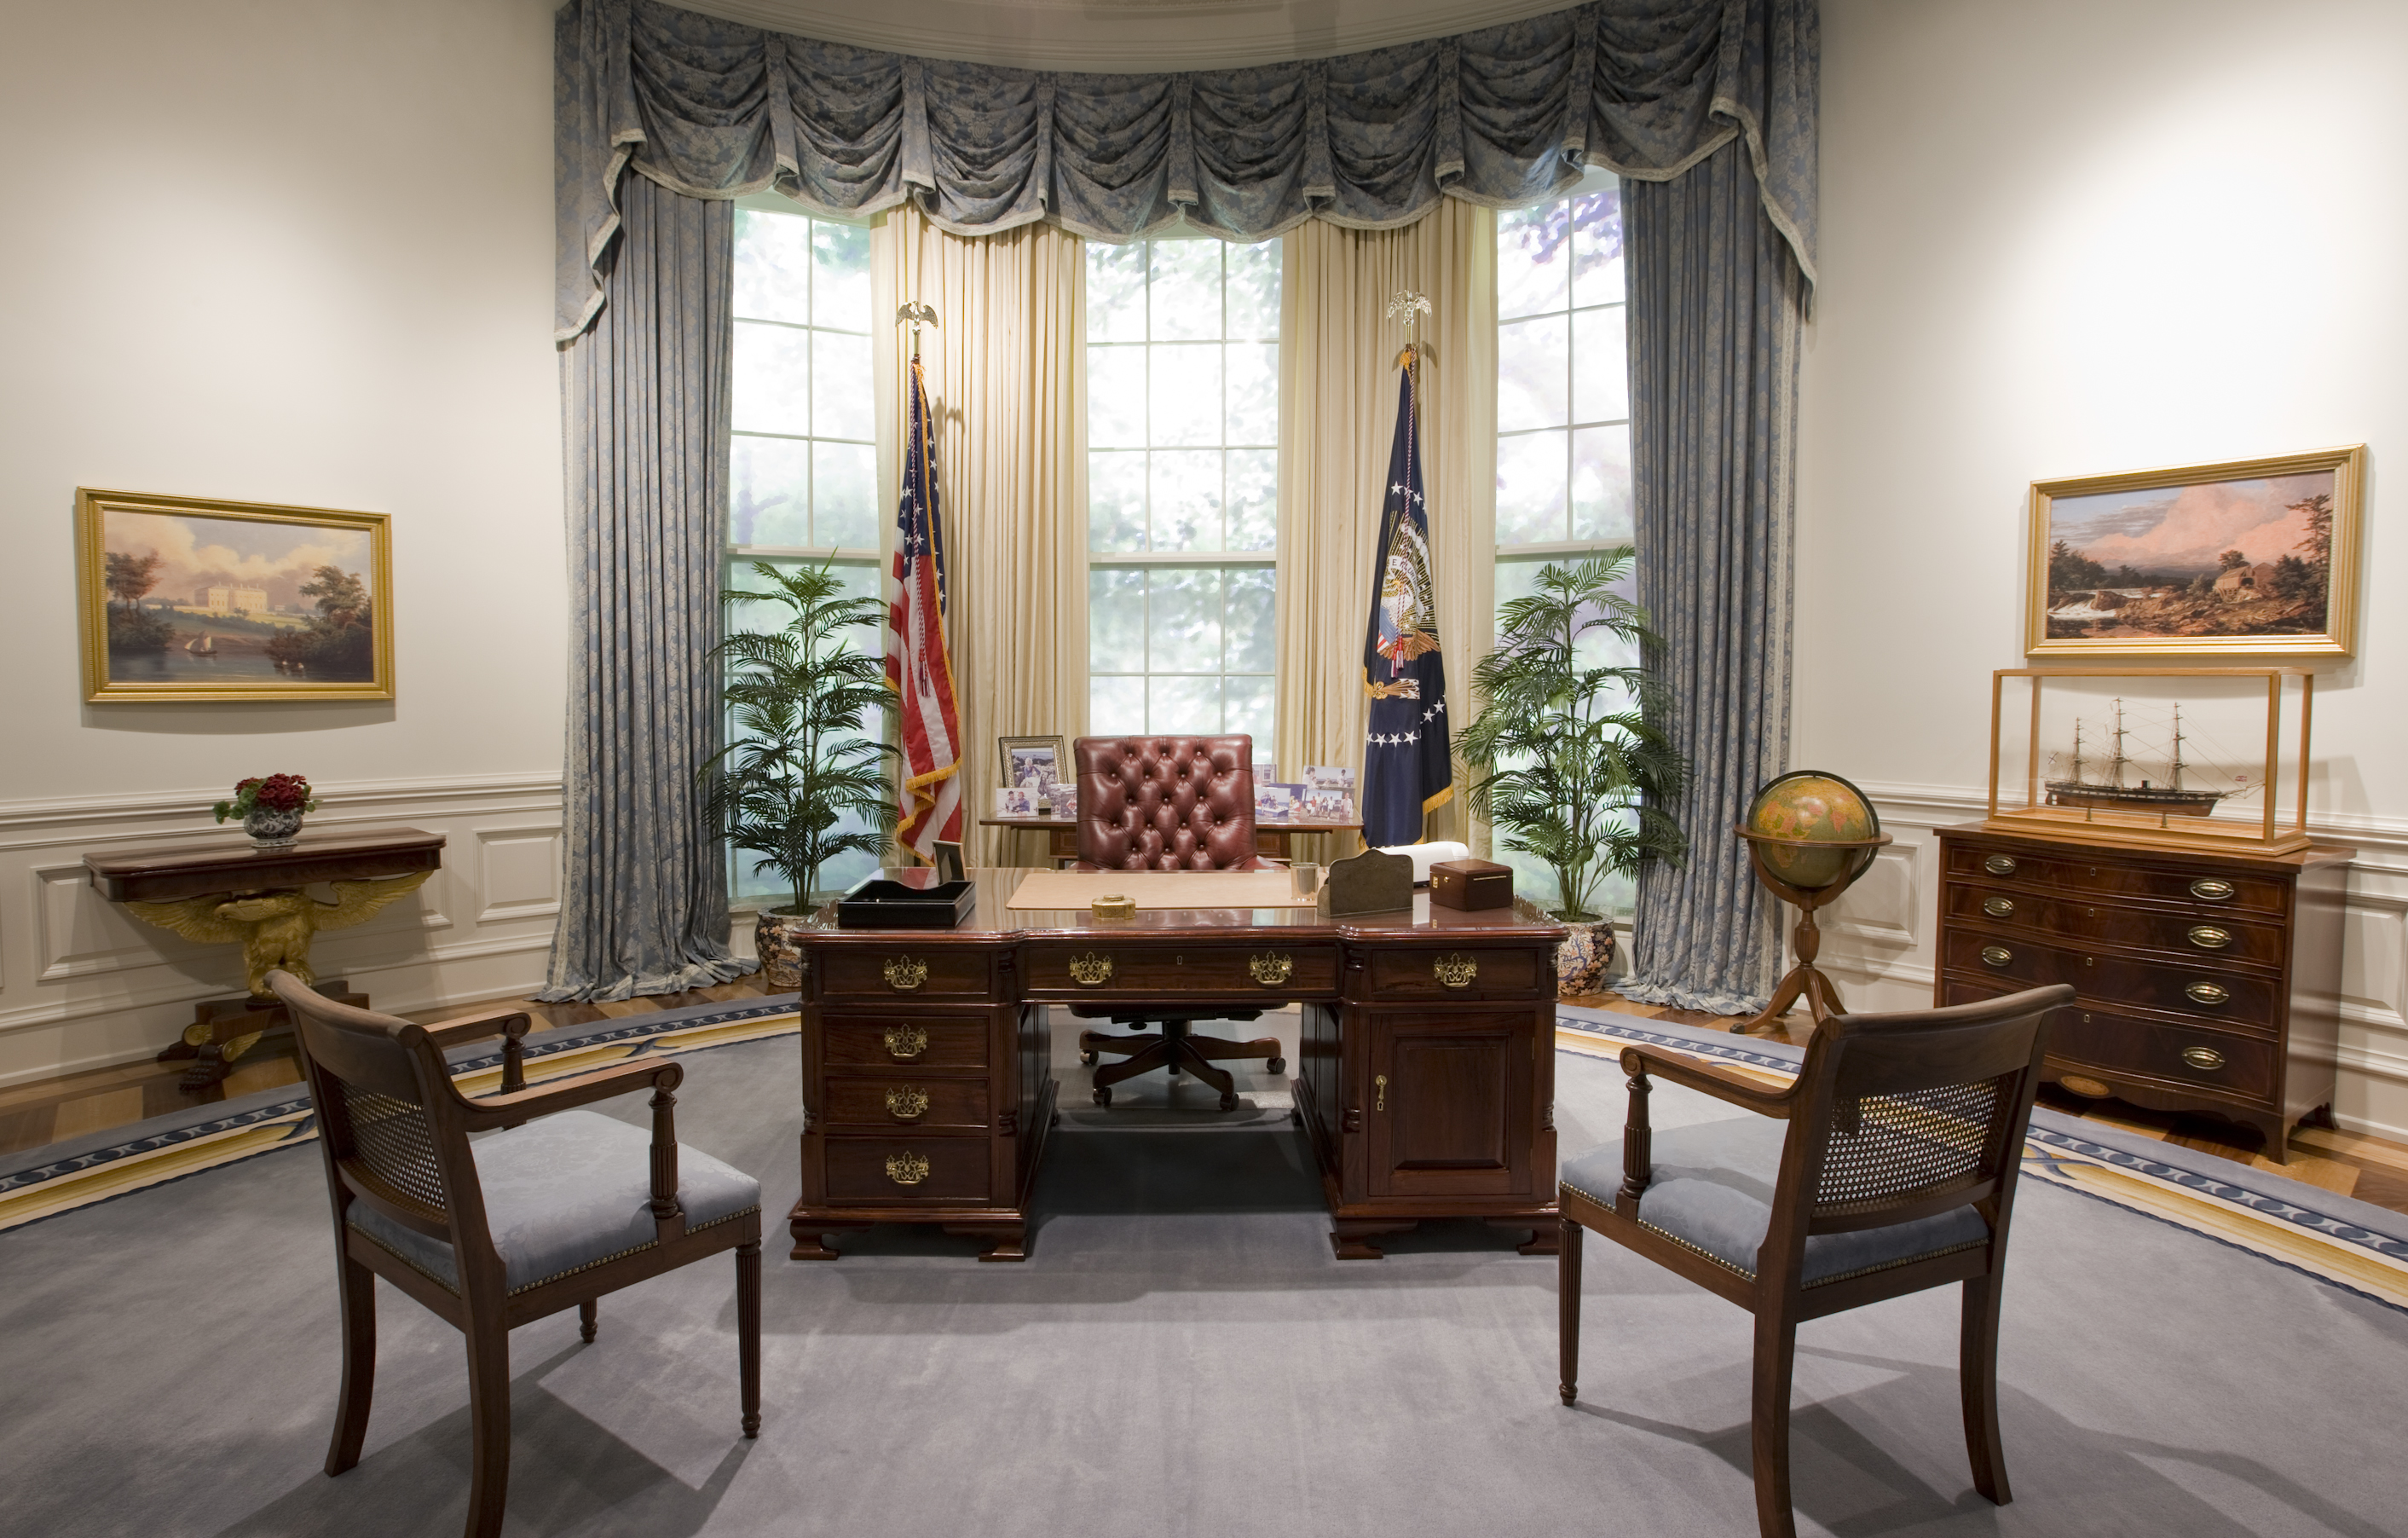 FileBush Library Oval Office Replicajpg Wikimedia Commons